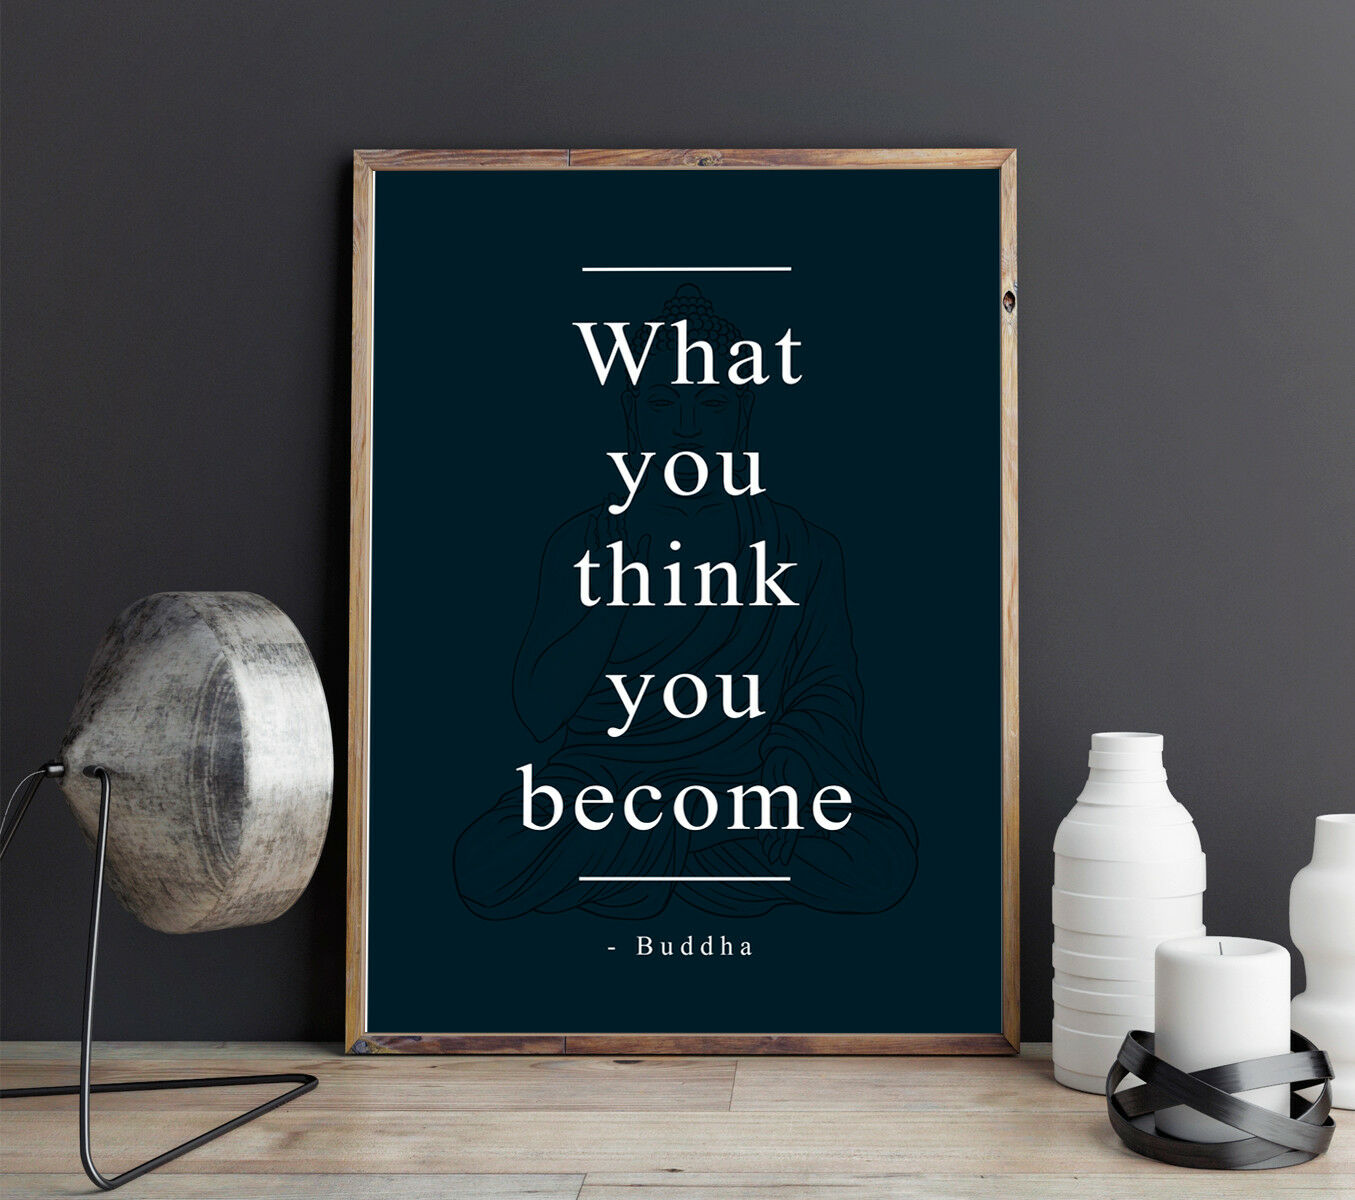 Buddha Quotes What You Think You Become Hight Quality Matte Poster